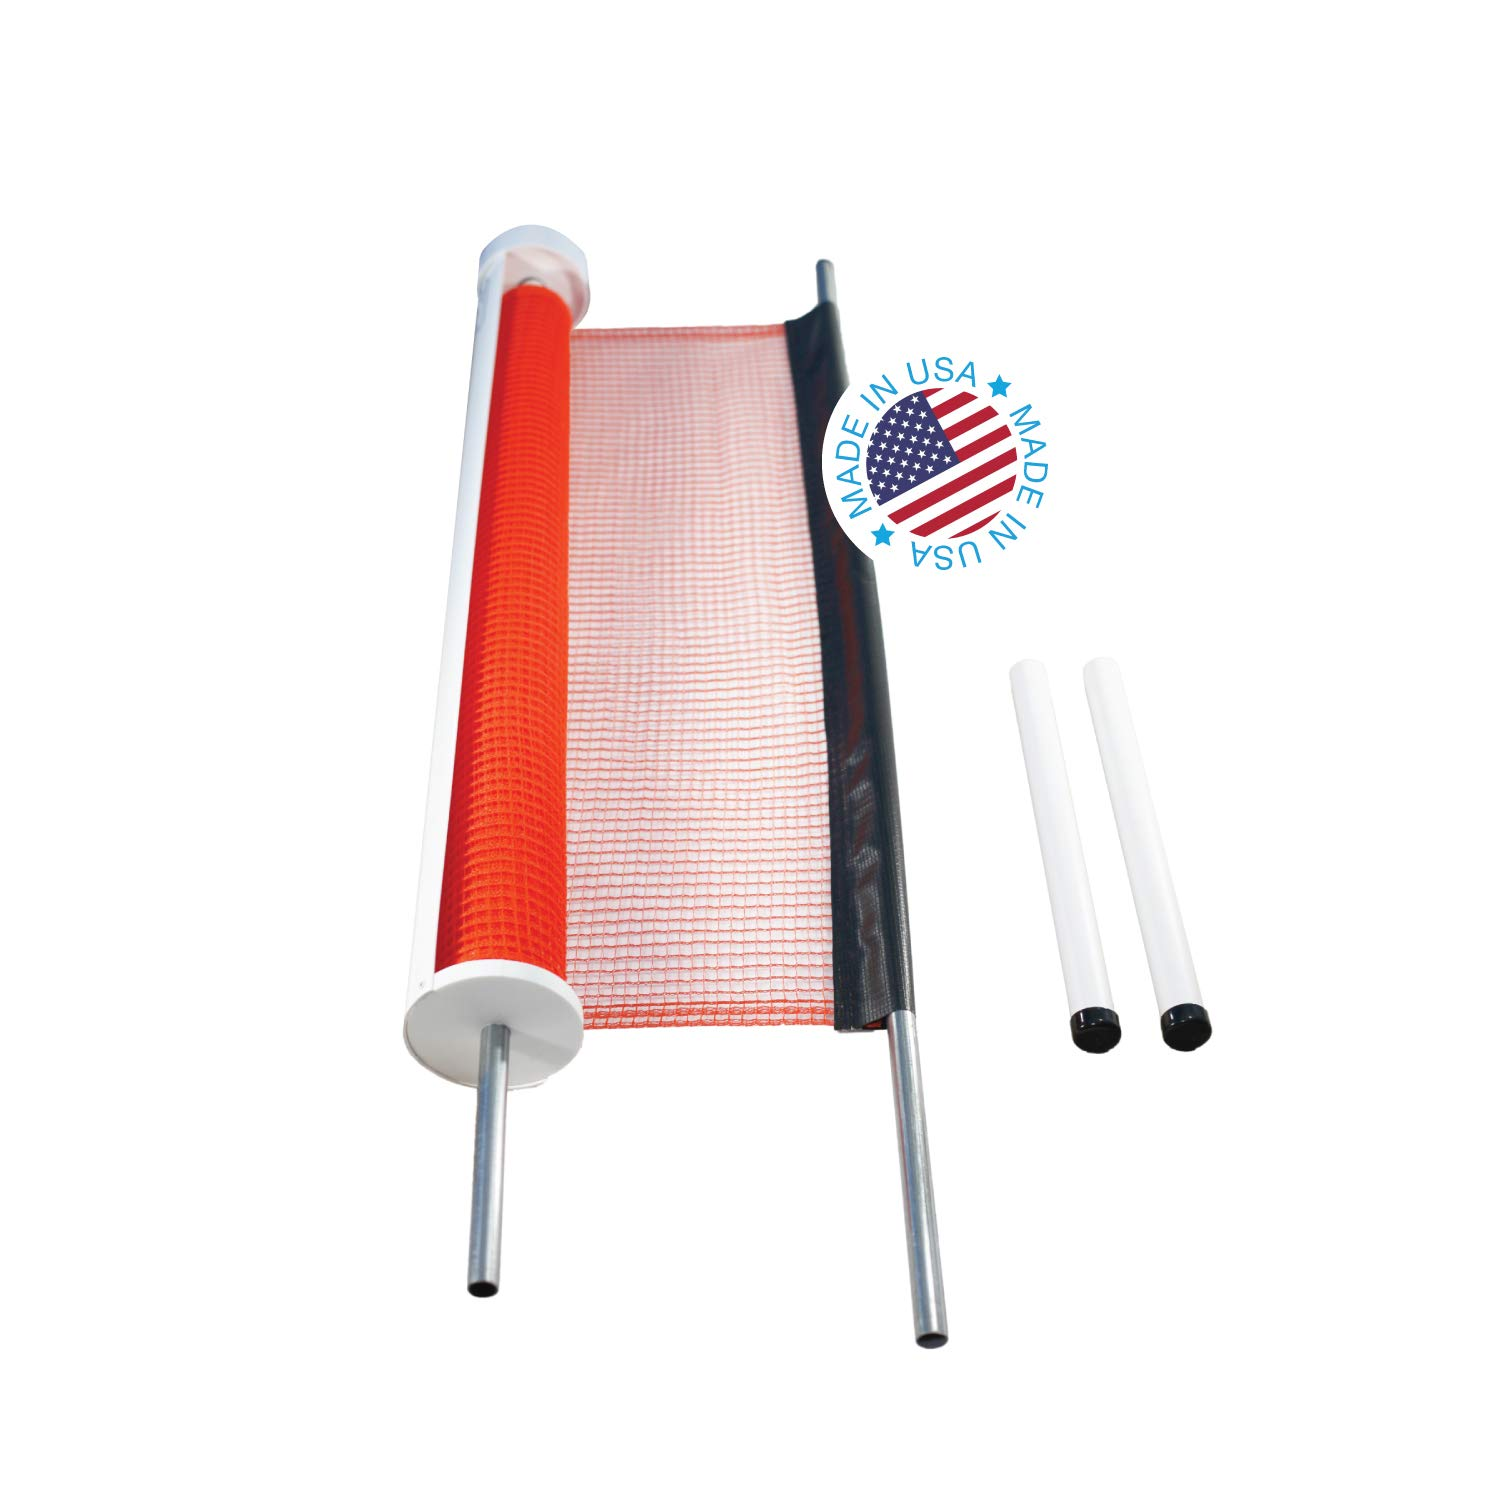 Kidkusion Retractable Driveway Guard, Orange, 25' | Driveway Safety; Outdoor; Barrier; Adjustable by KidKusion